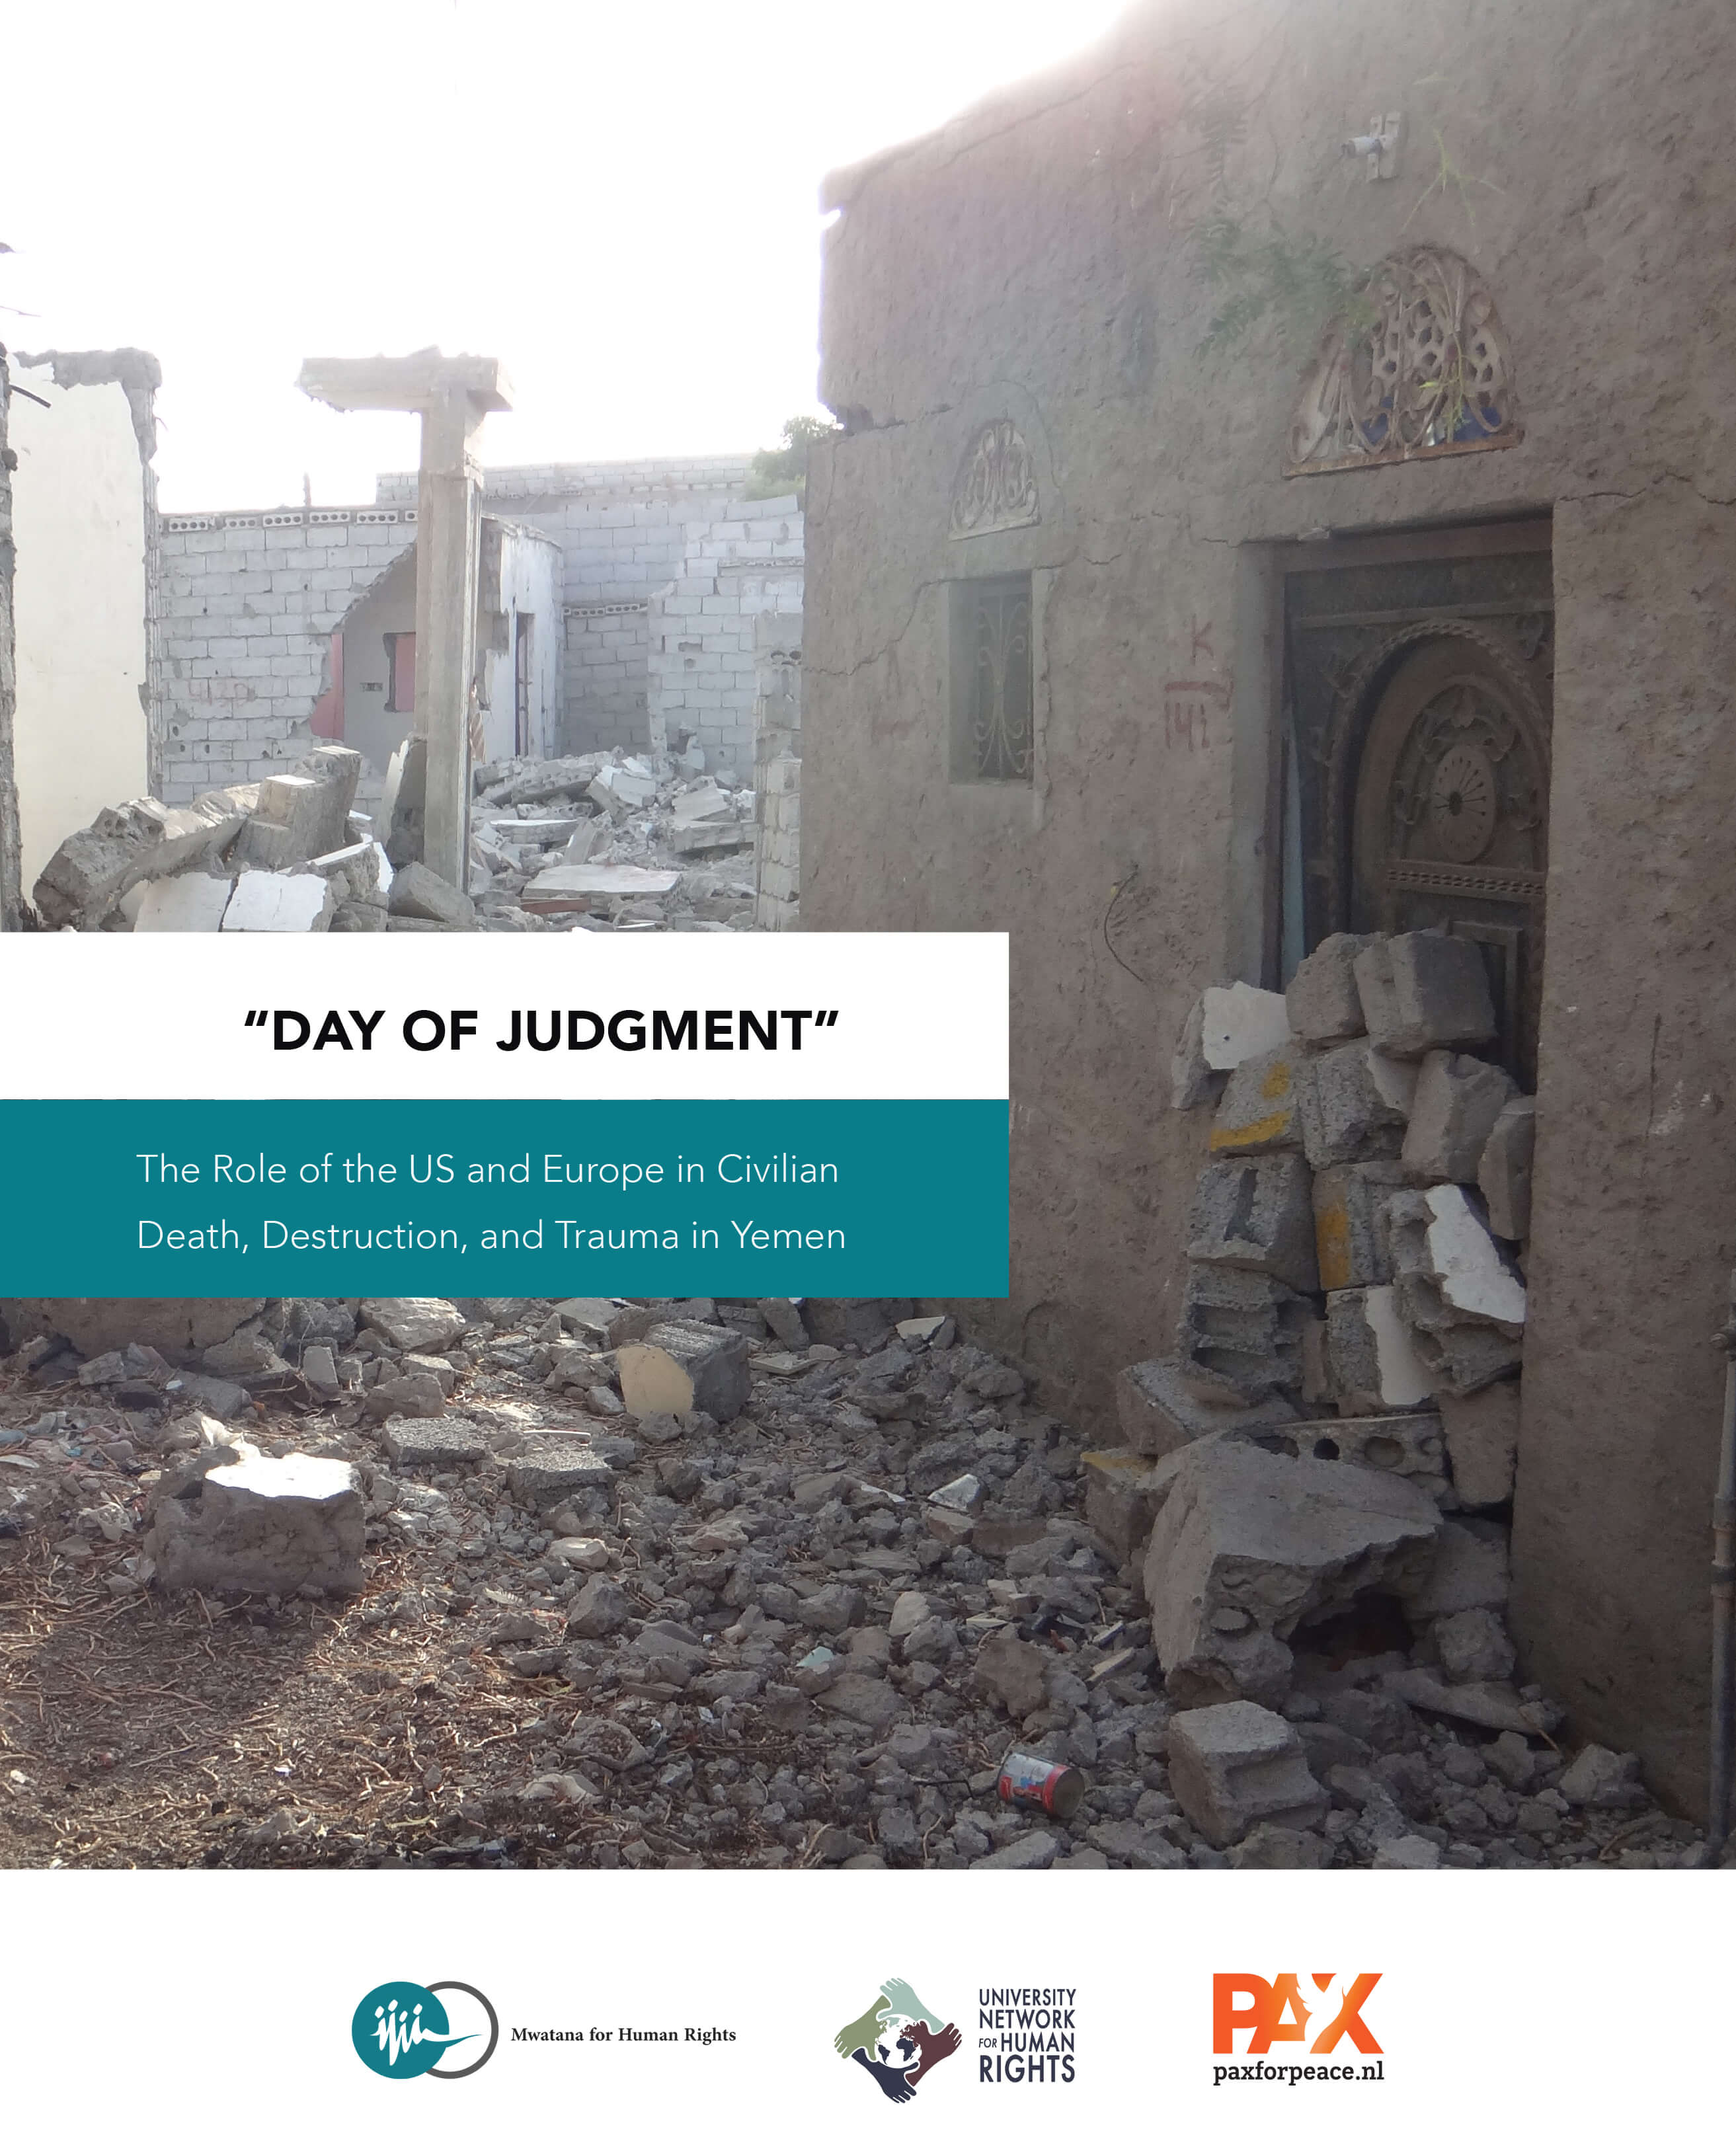 Day Of Judgment | Mwatana for Human Rights